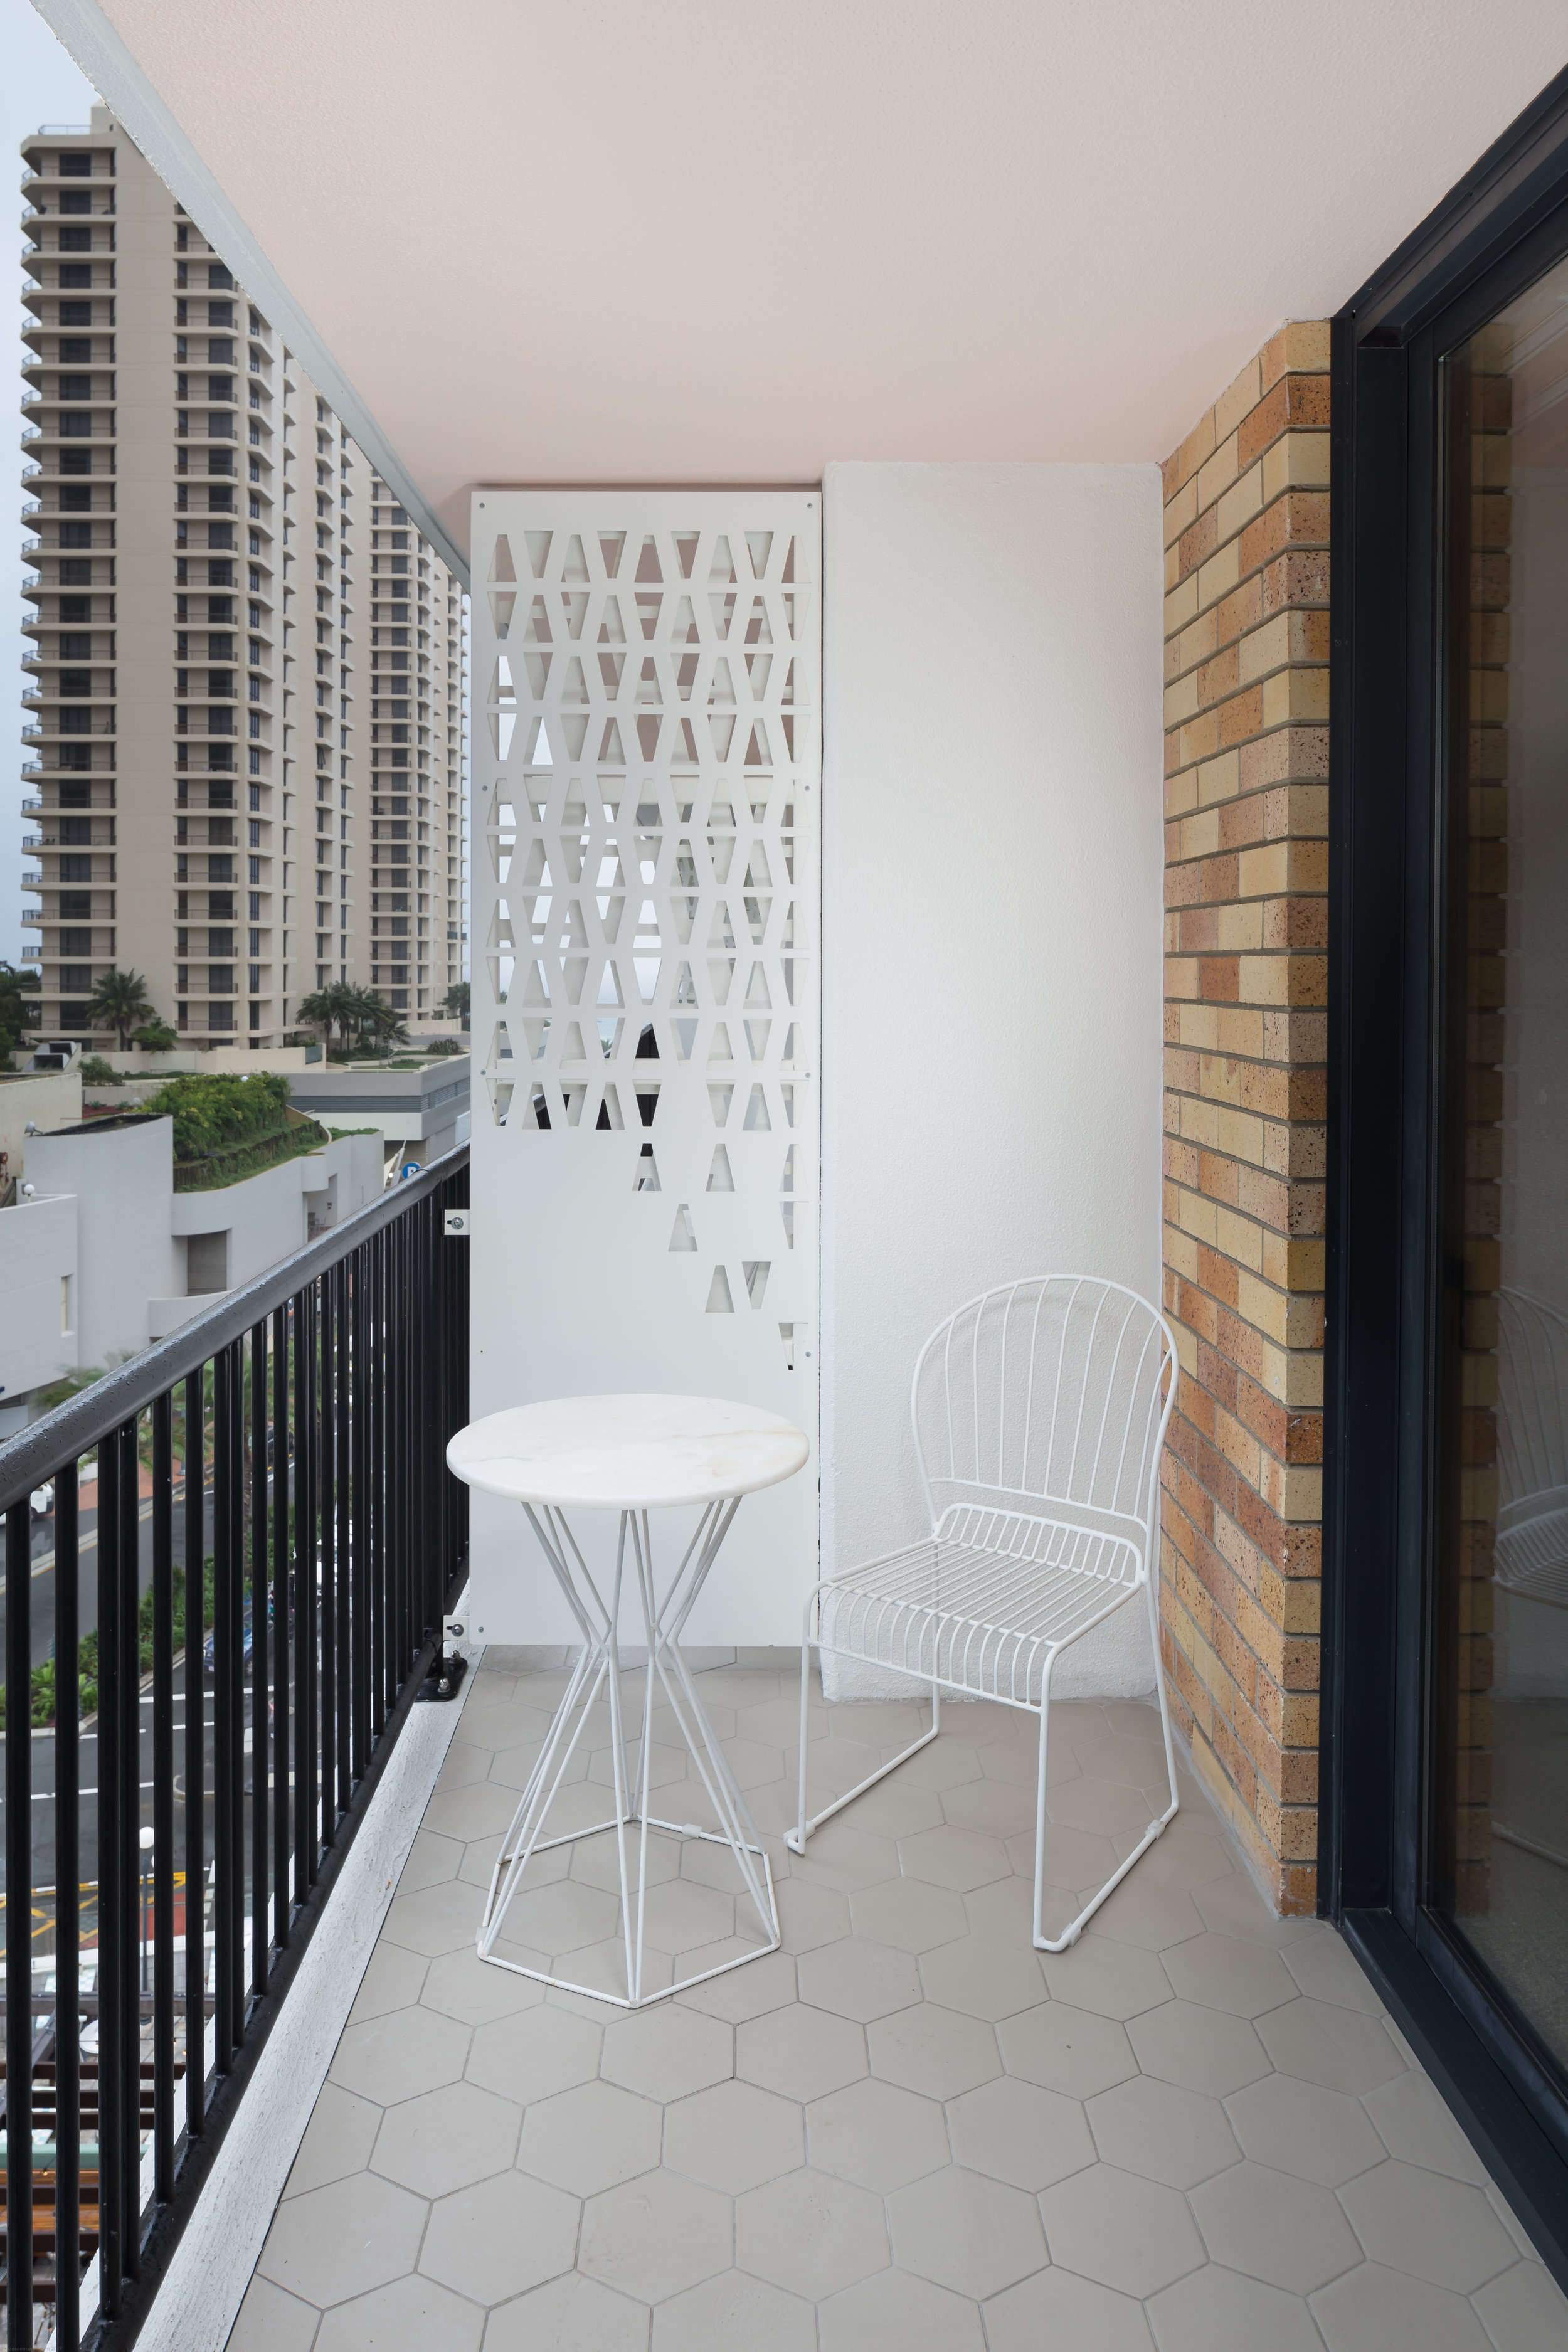 The Island_Boutique Hotel Suites - Balcony Detail